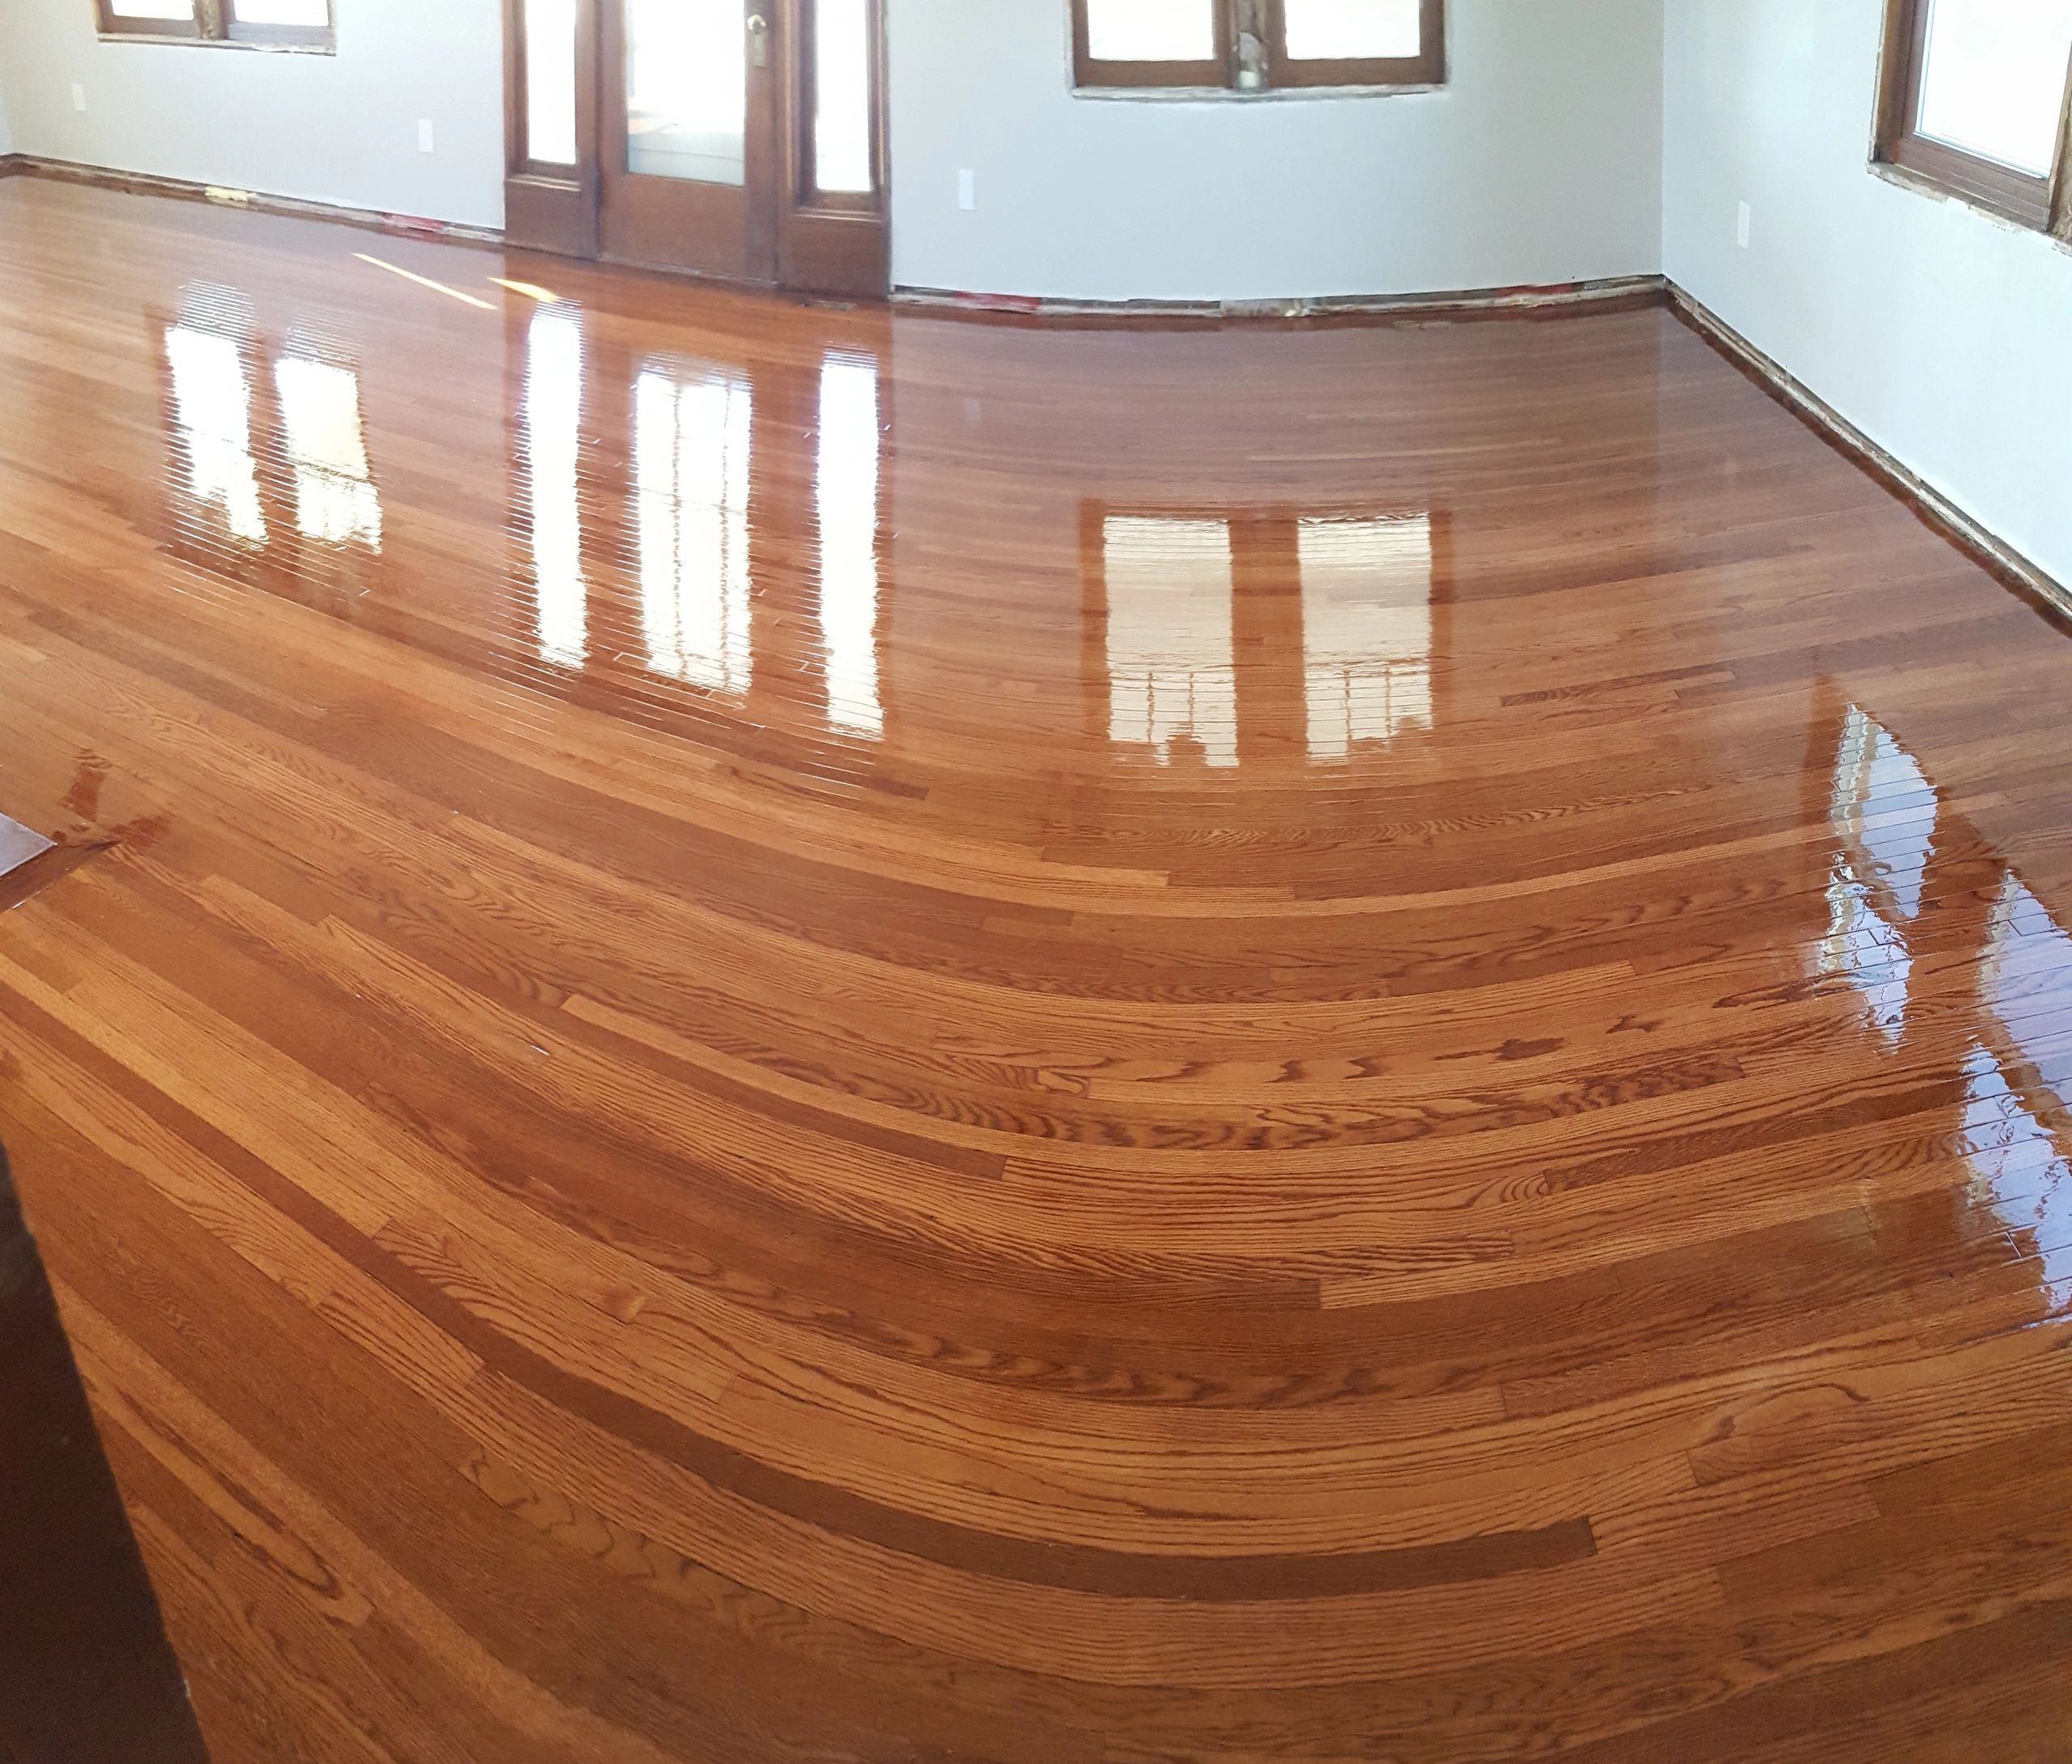 Hardwood Floor Refinishing Contractors Near Me Of Hardwood Floor Refinishing Floor Plan Ideas for Adams Refinishing Serving All Of Central Illinois with the Highest Quality Longest Lasting Floor Refinishing